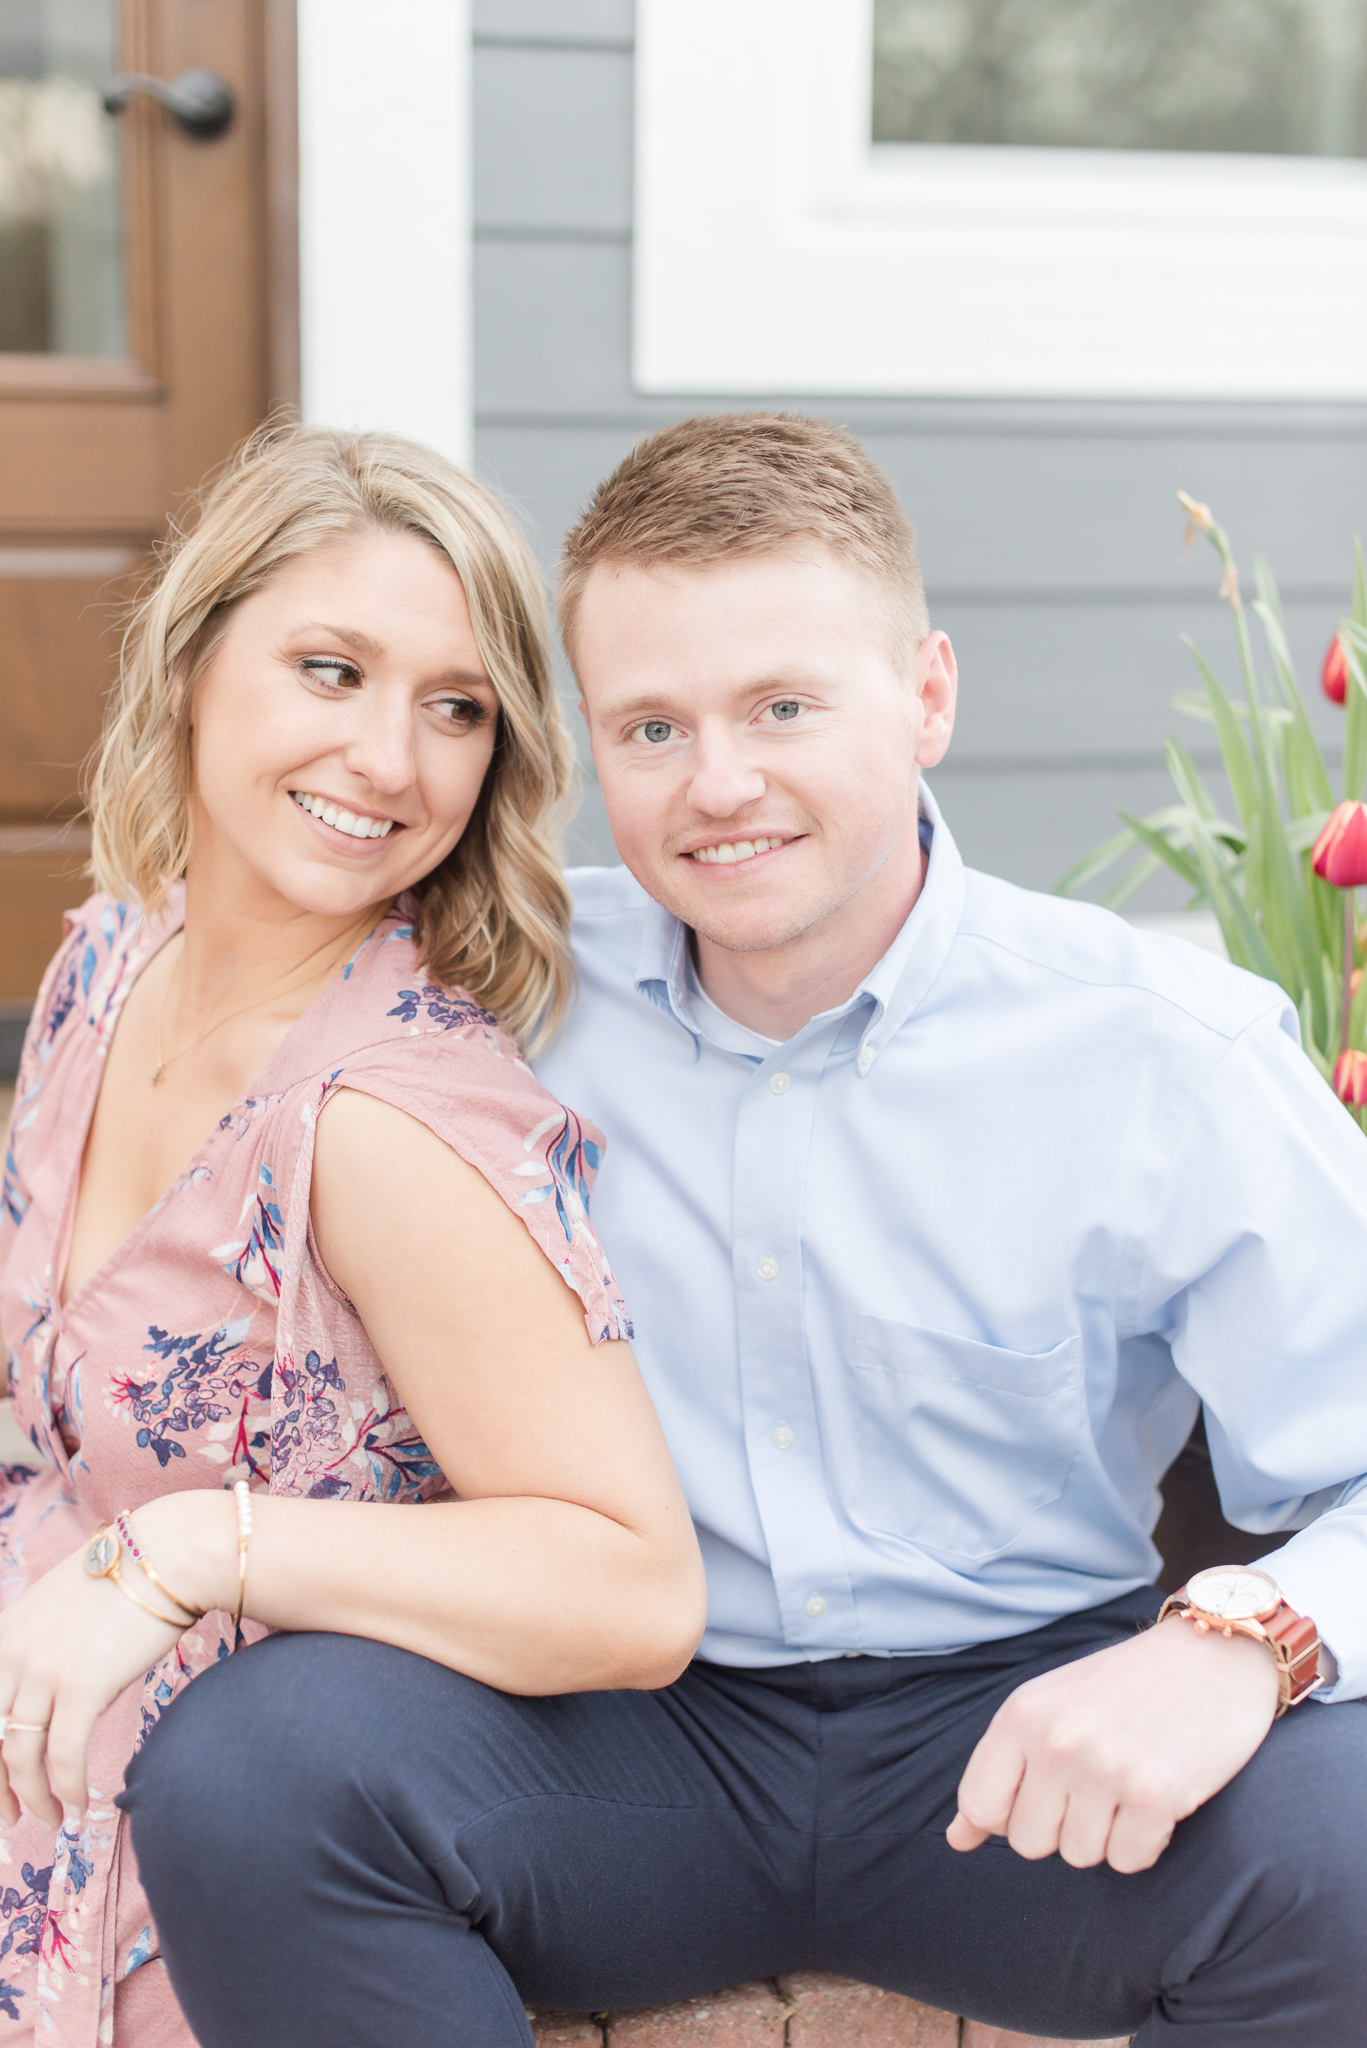 Richie Woods Nature Preserve and Mustard Seed Gardens Engagement Session Wedding Photos-54.jpg